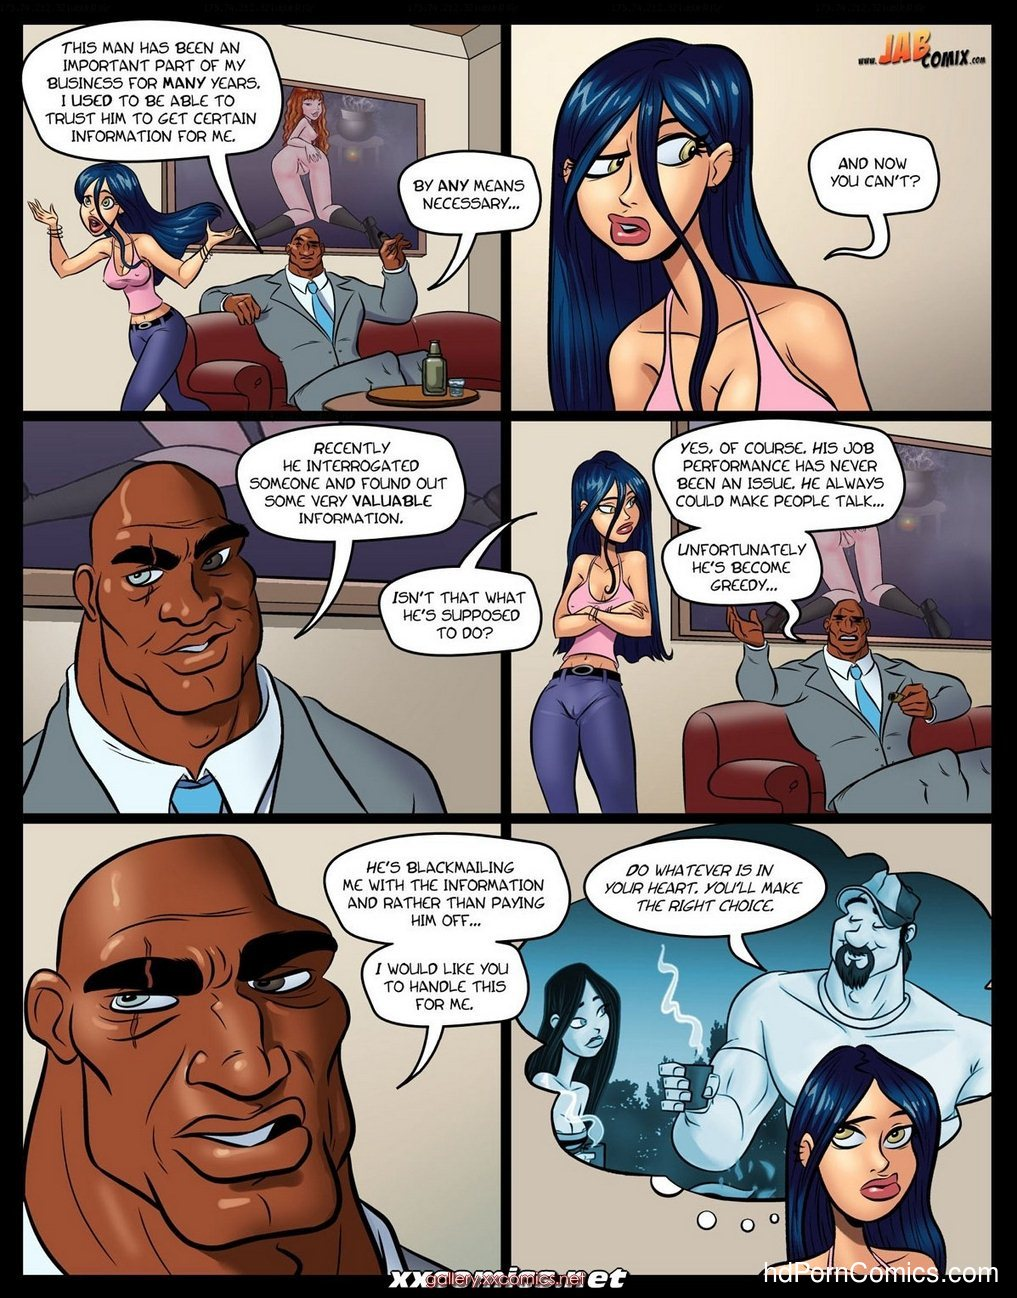 Omega Girl 3 - Porncomics15 free sex comic